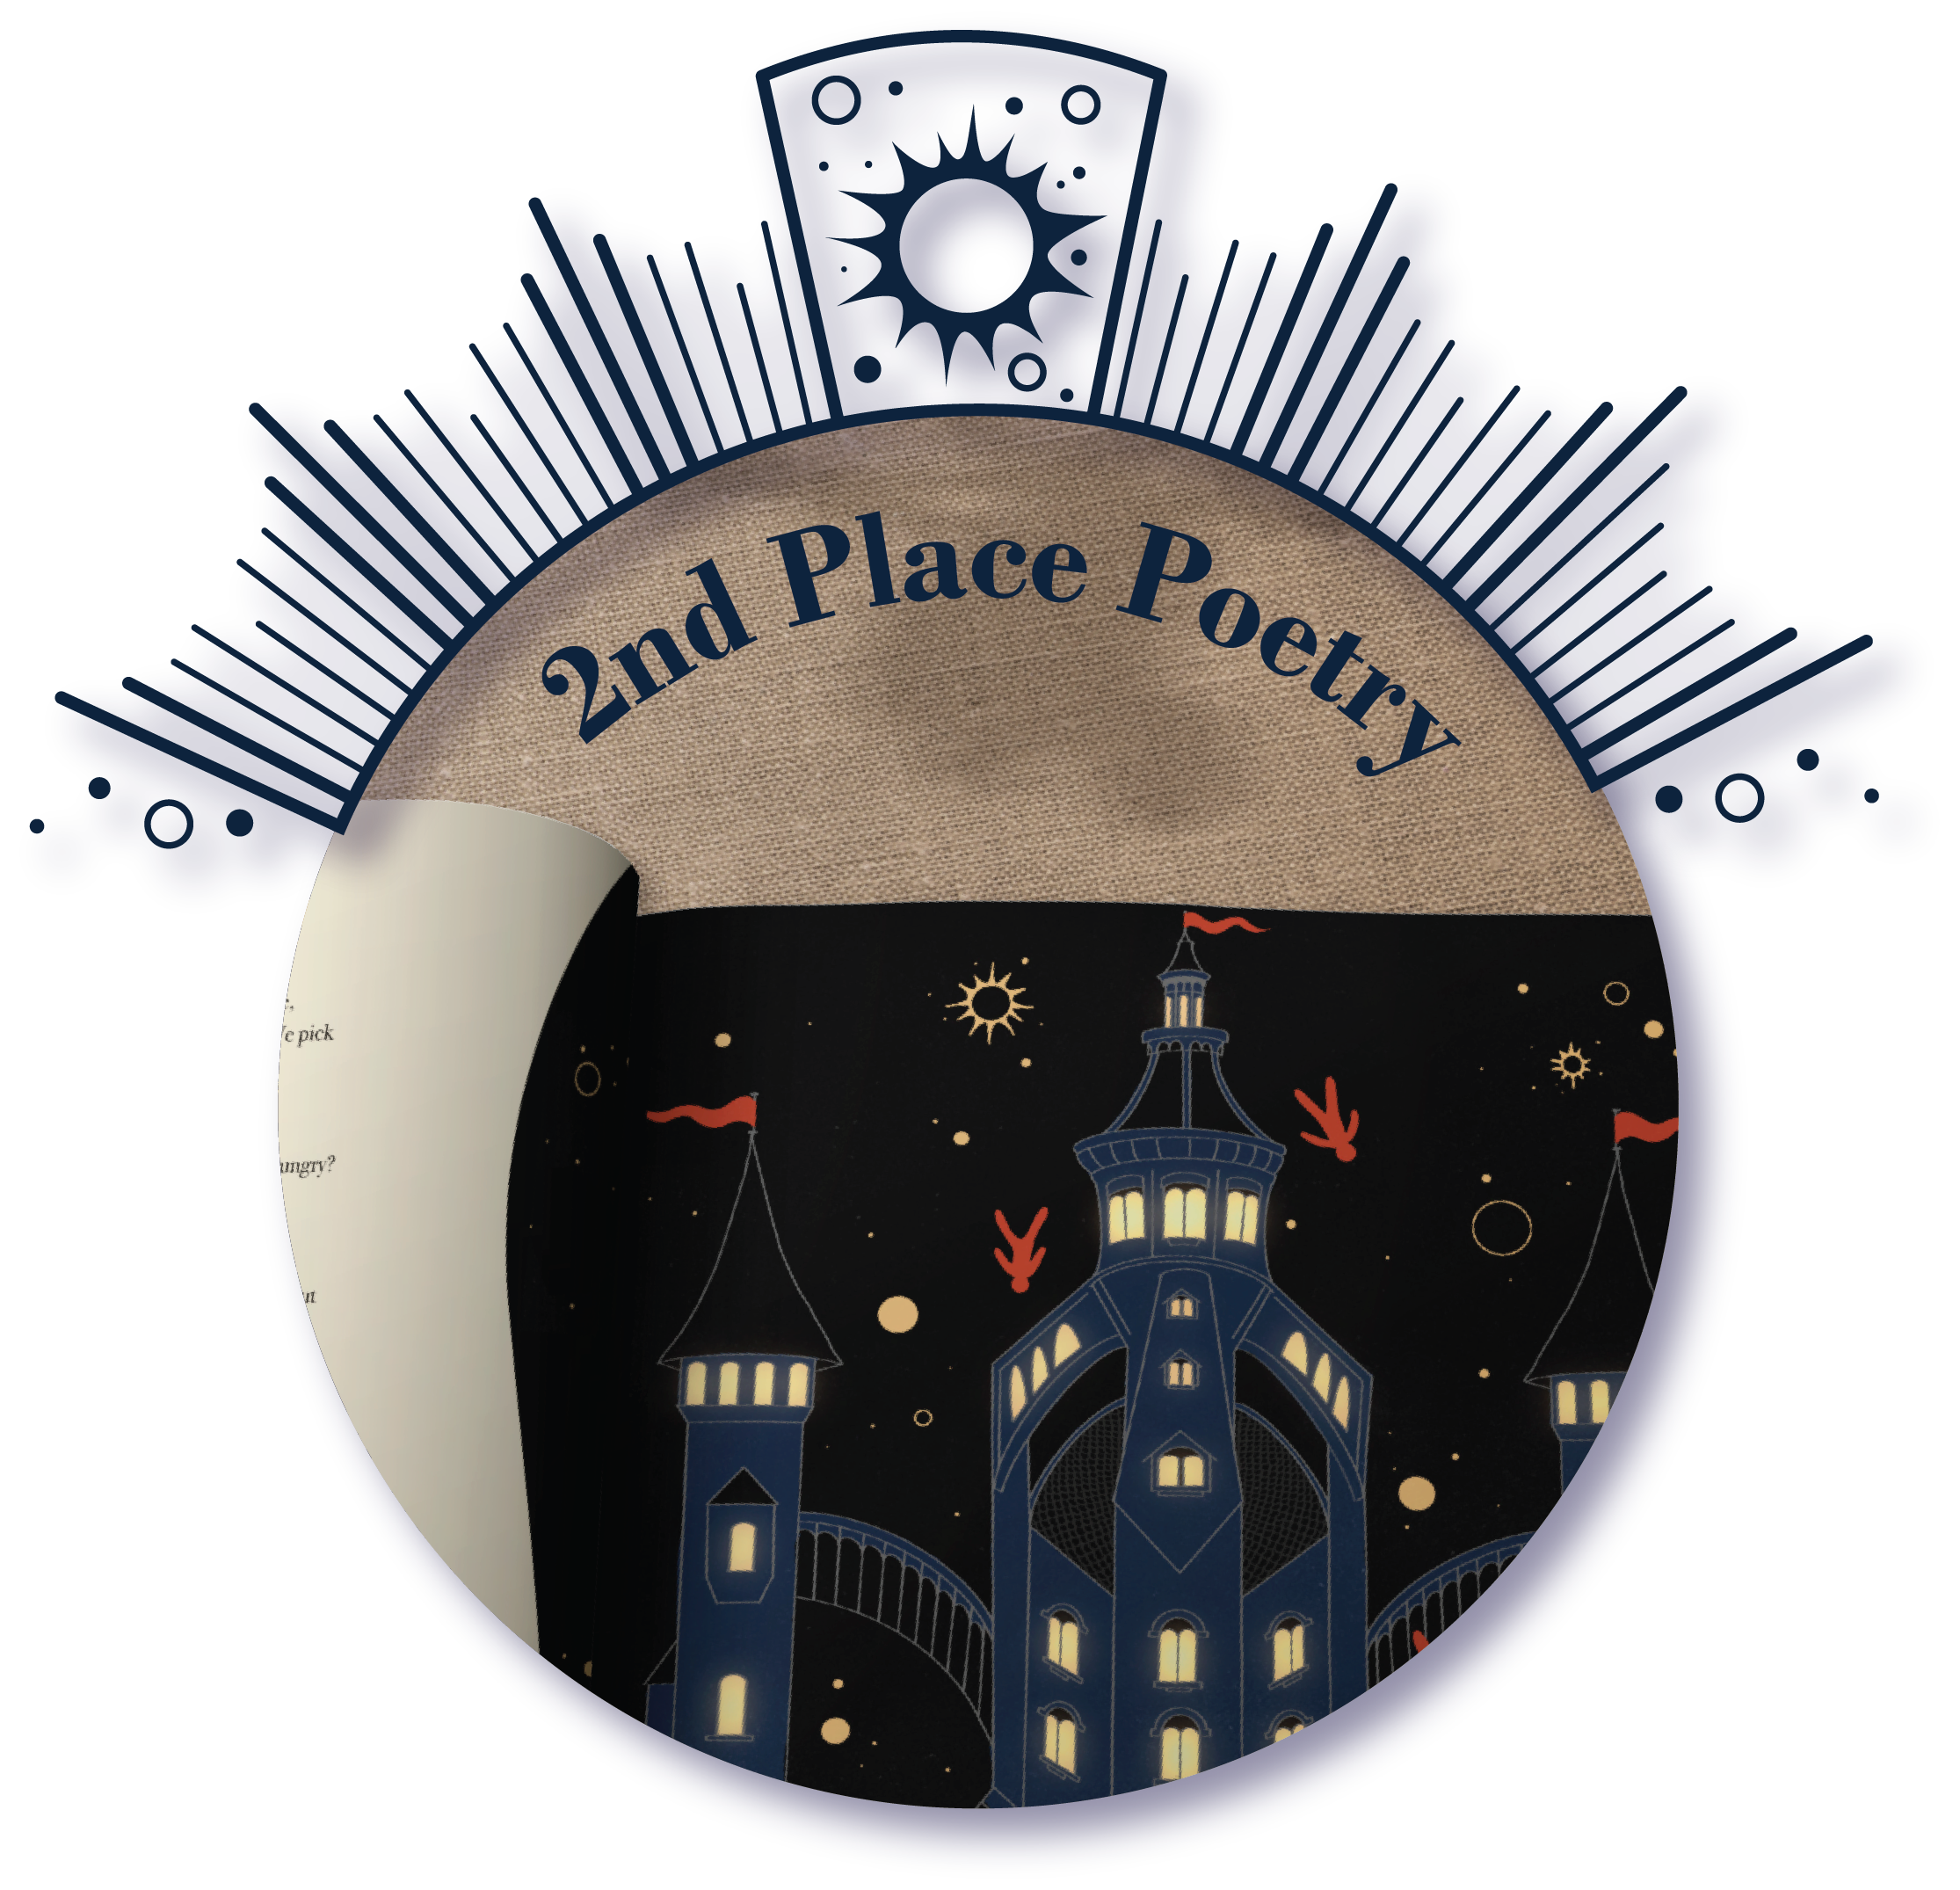 The prize-winner logo for 2nd place poetry, showing the journal page for 'The Tower' by Alexa Stevens.